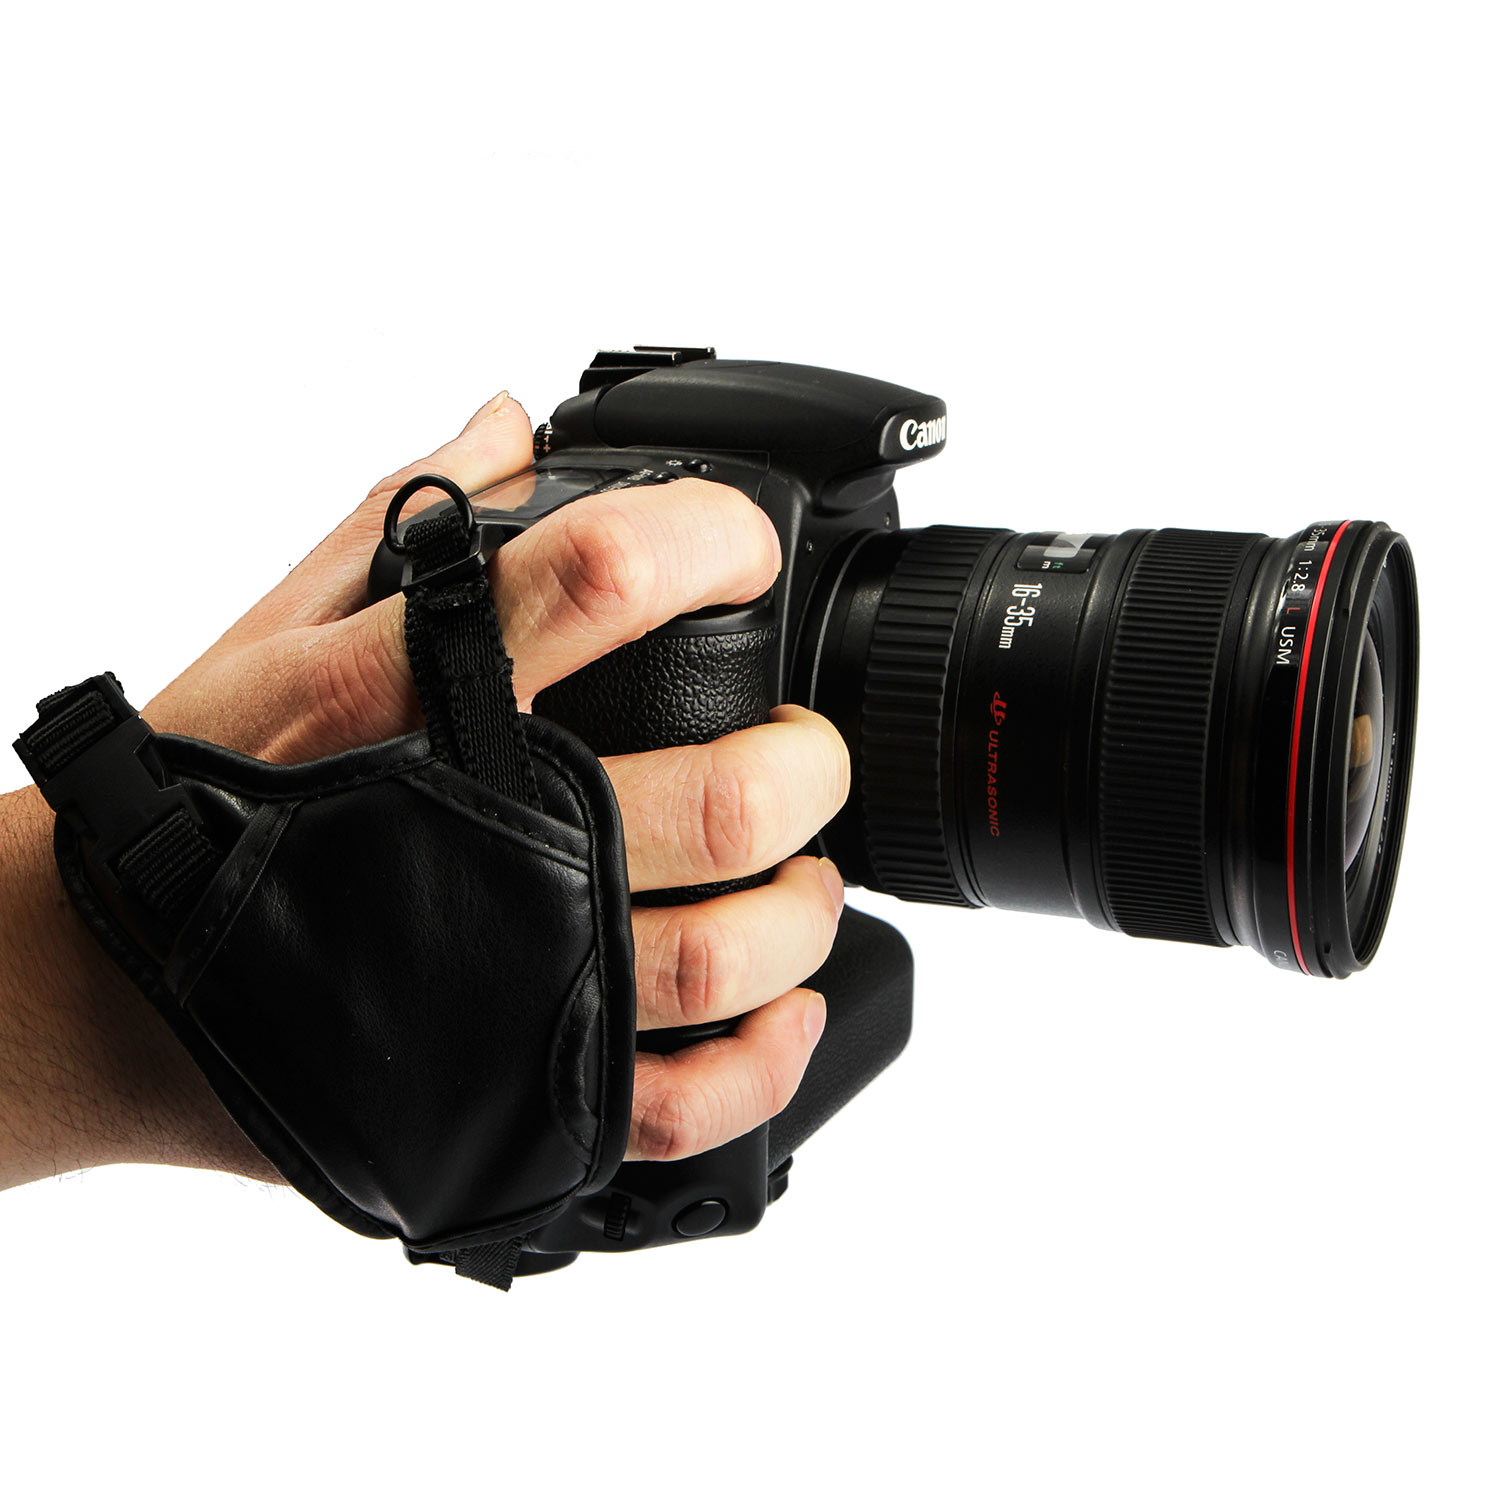 Olympus Camera Strap Shop For Cheap Accessories And Save